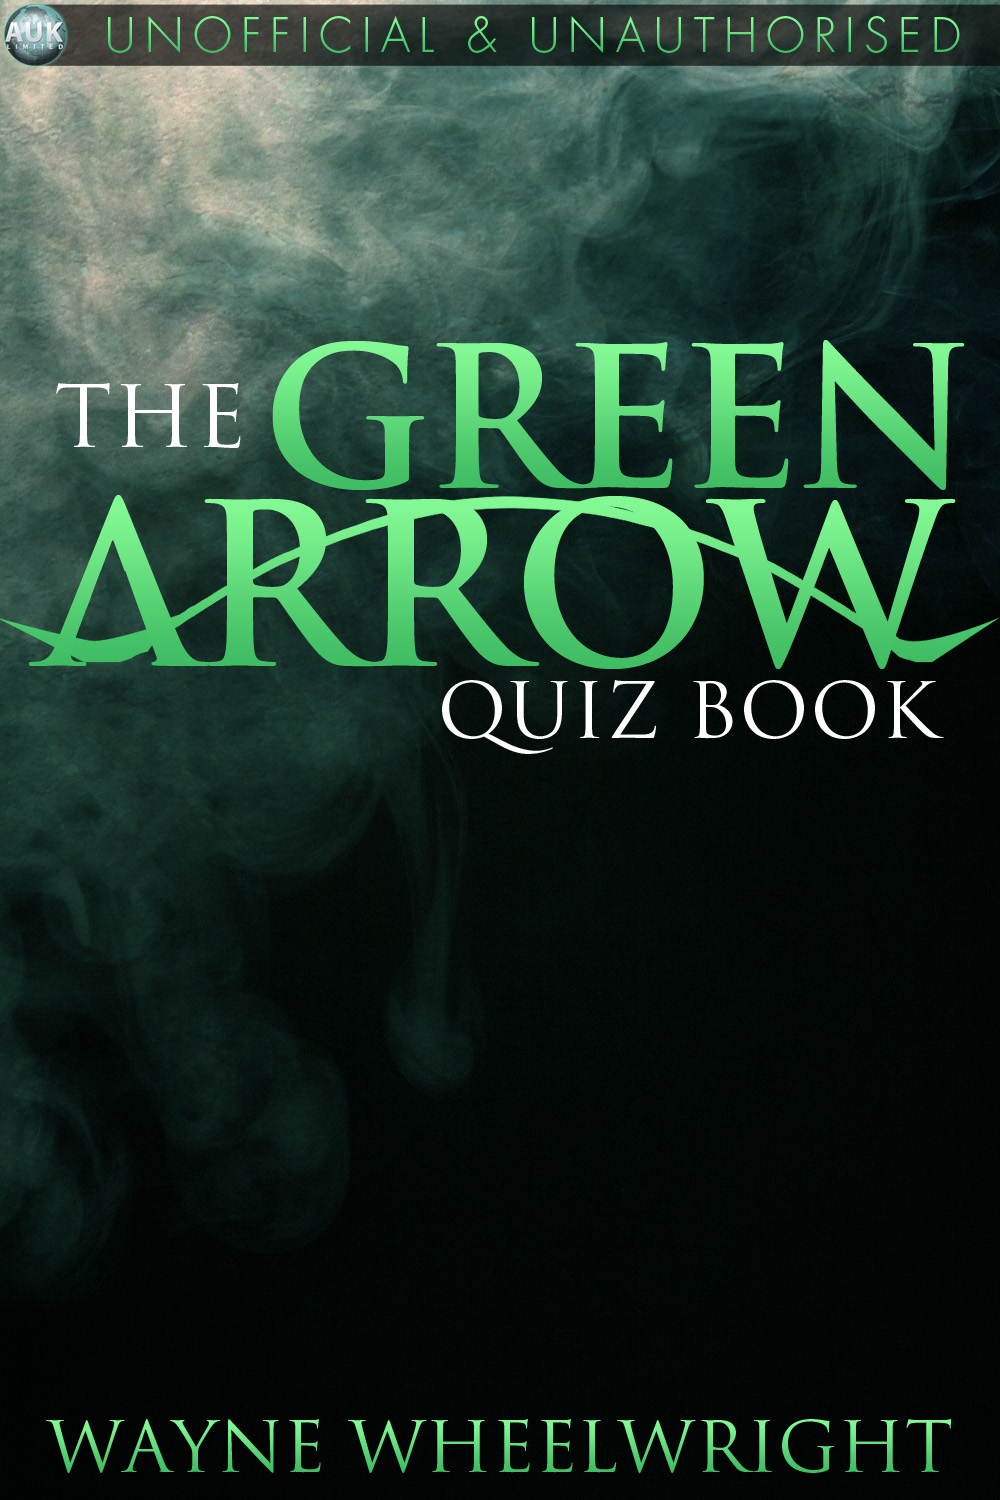 The Green Arrow Quiz Book